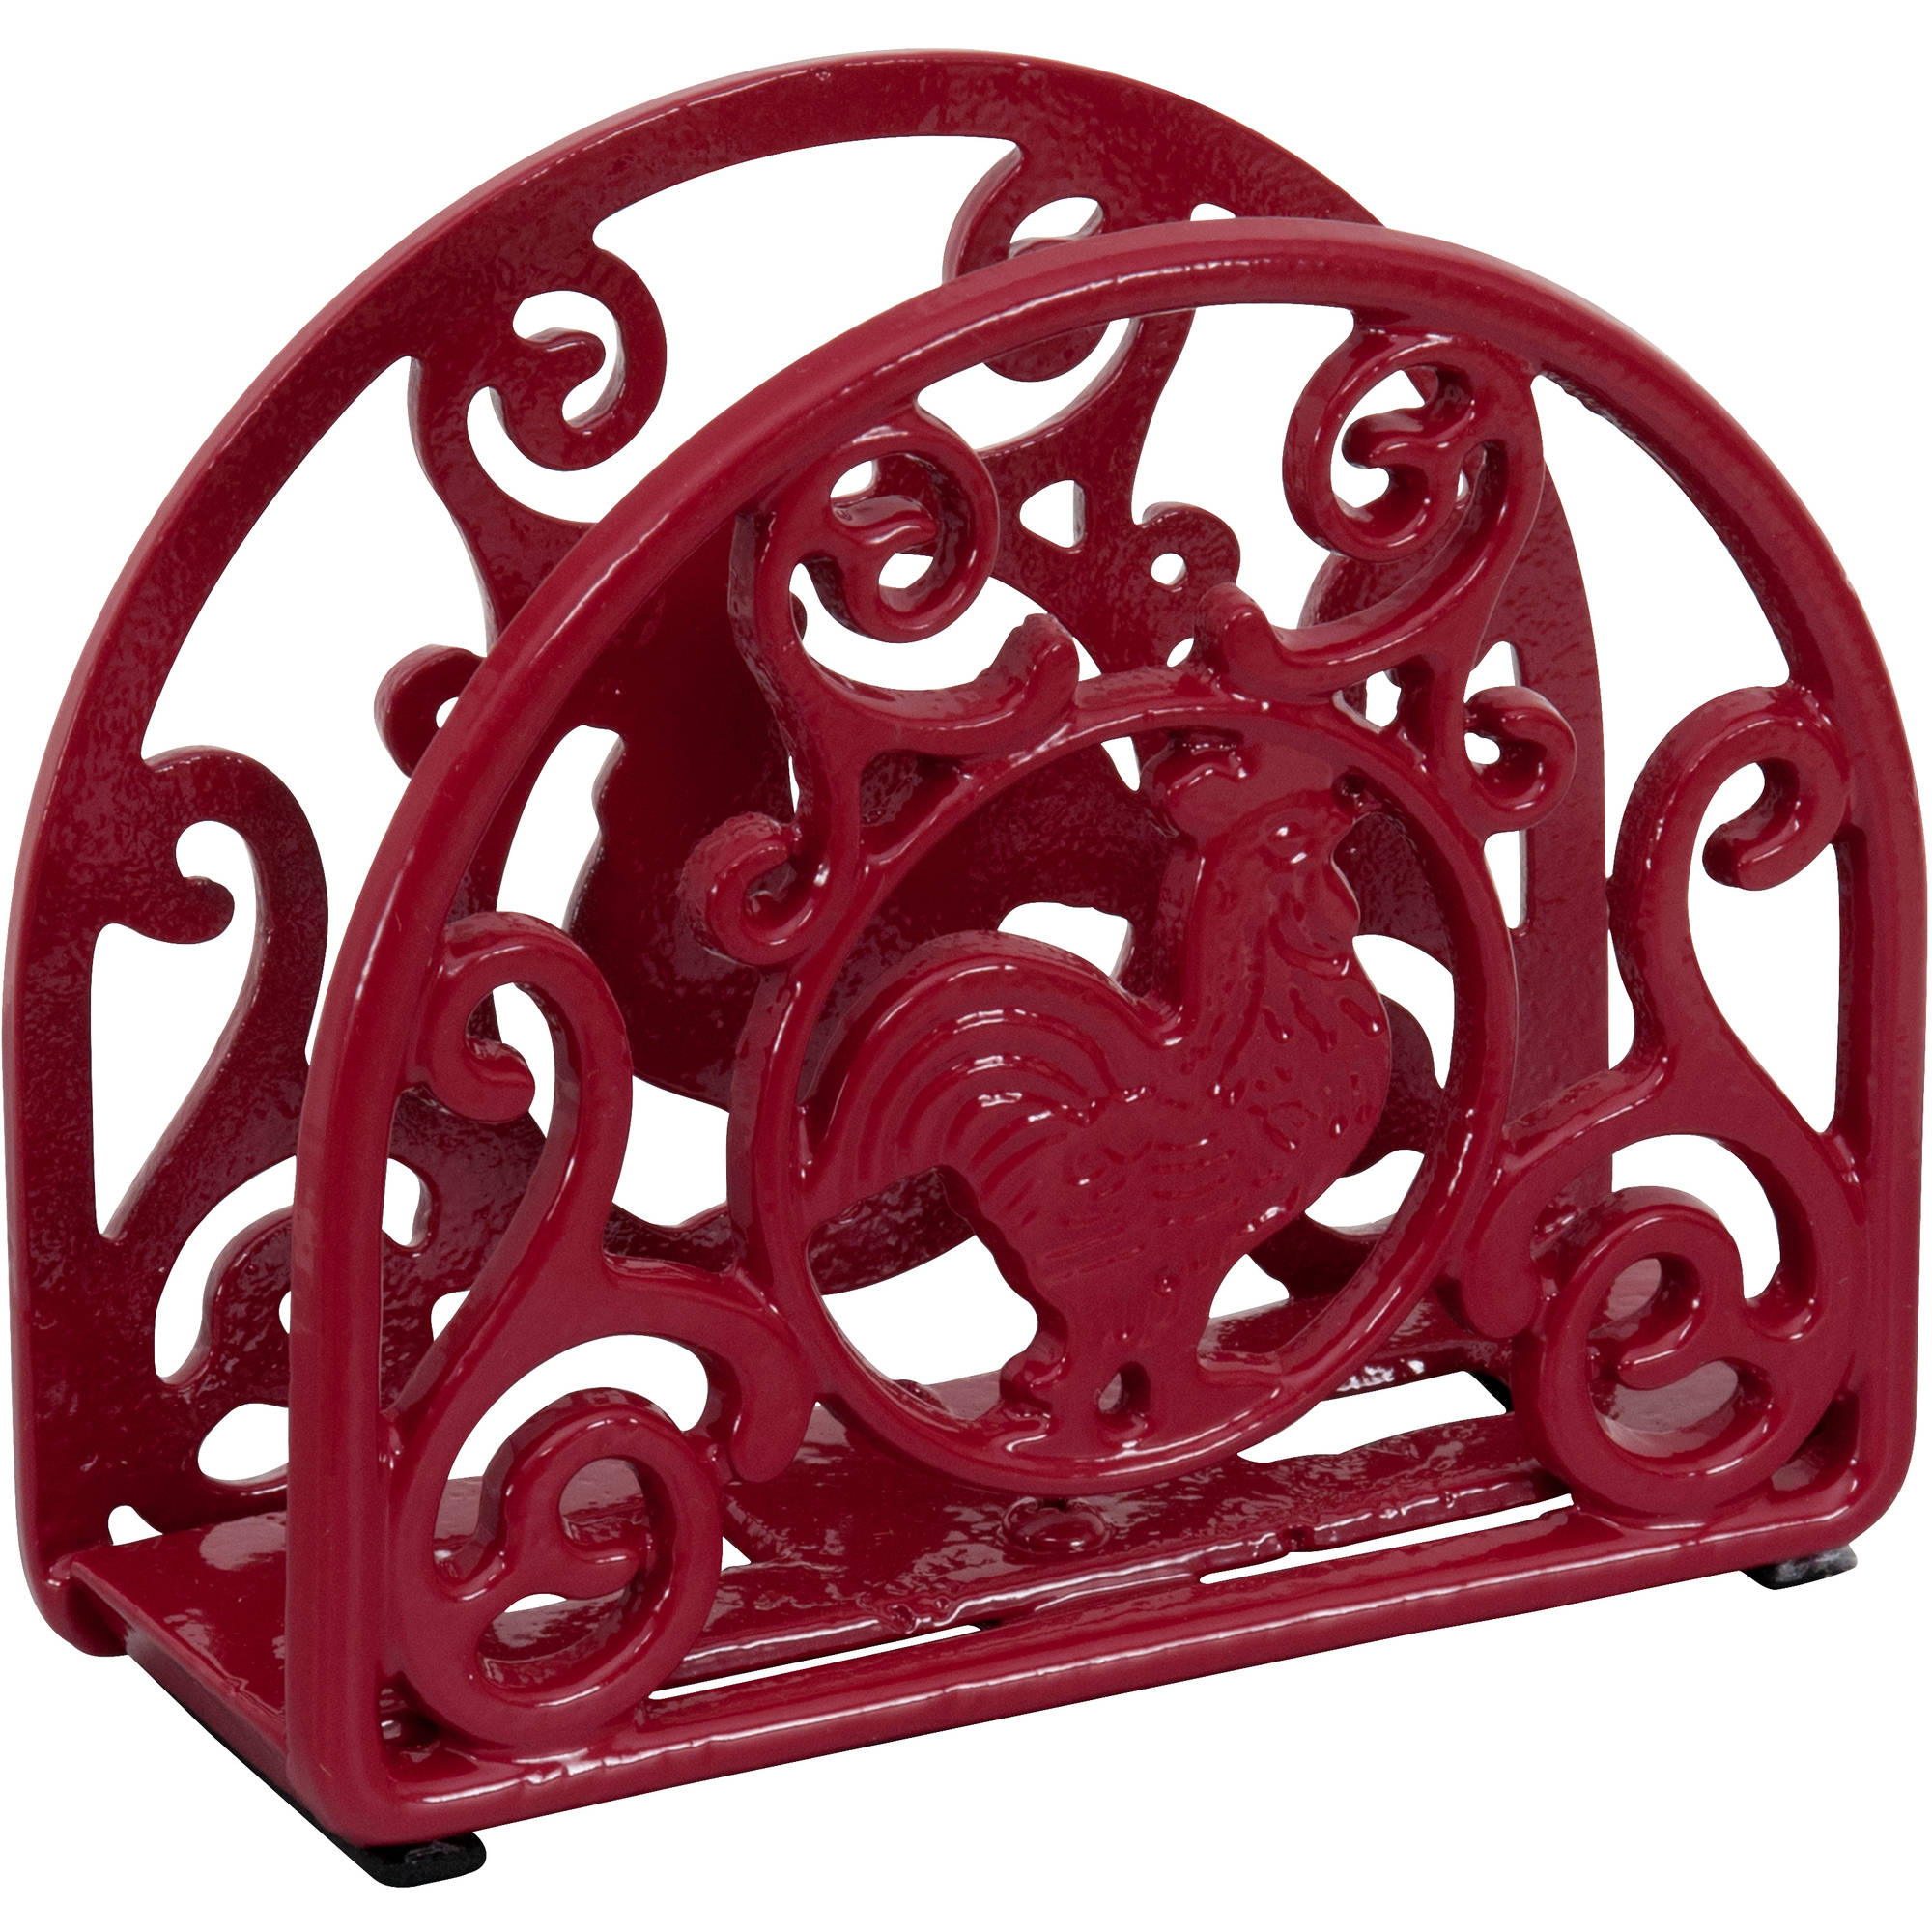 Better Homes and Gardens Red Rooster Cast Iron Napkin Holder